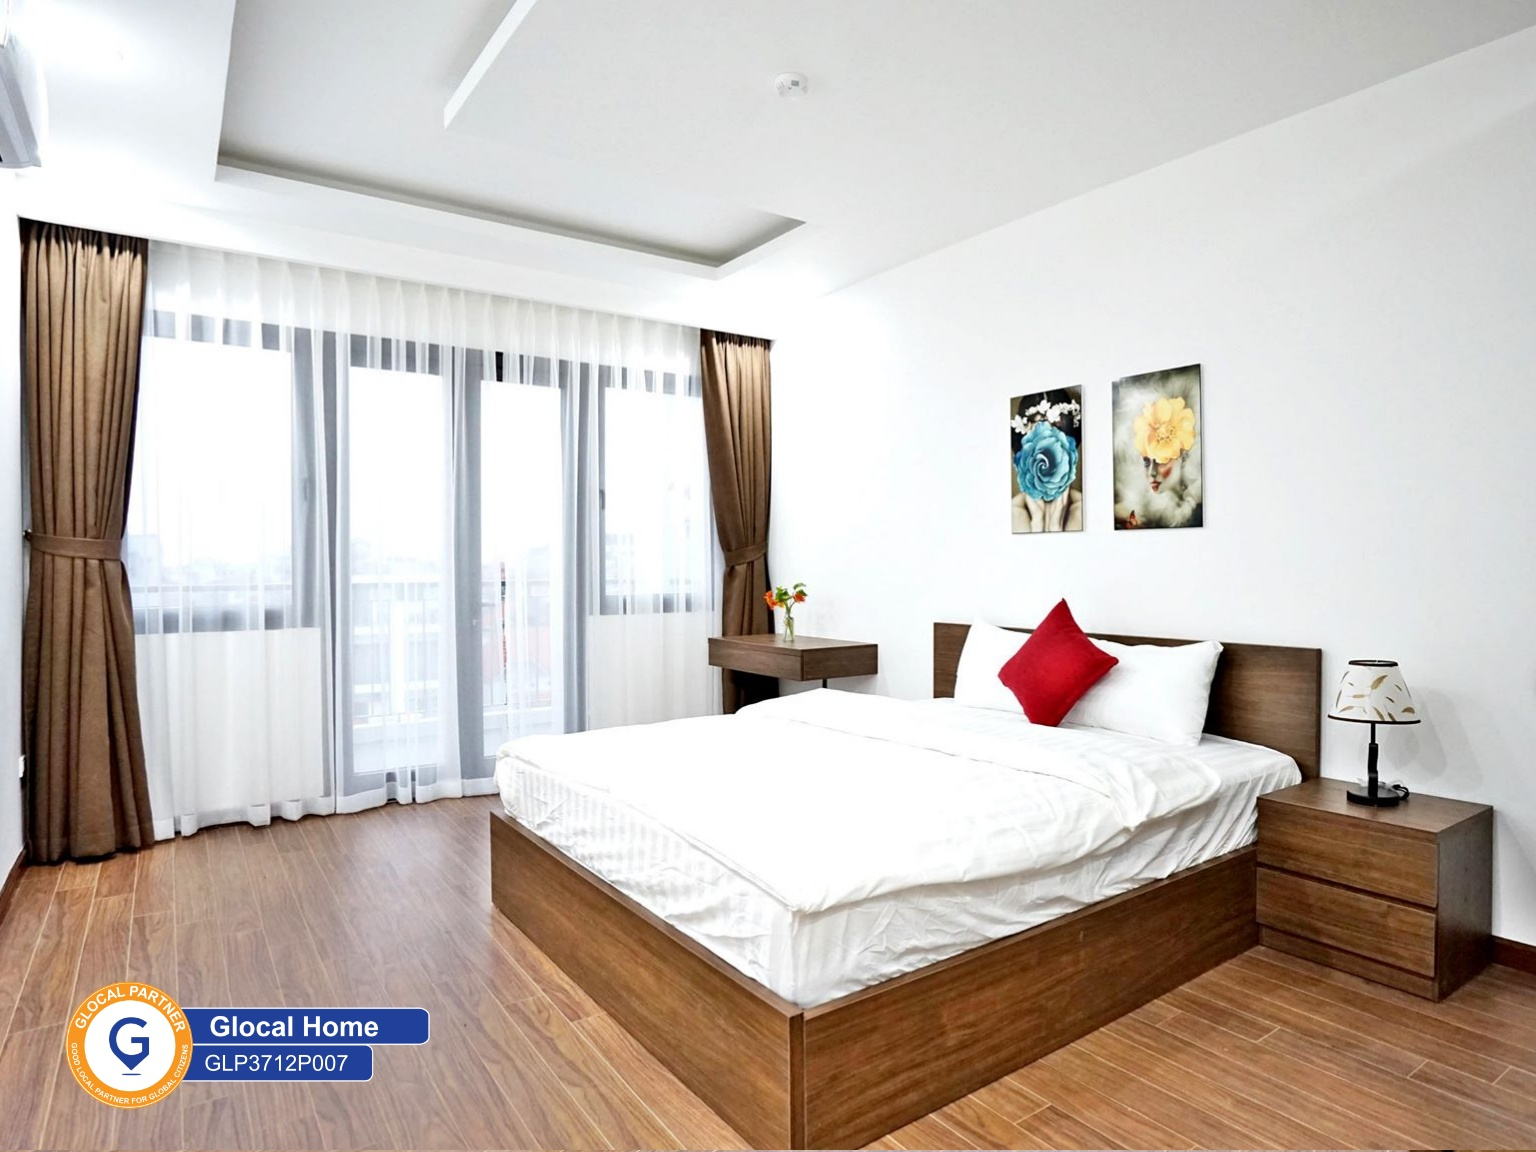 1 bedroom Apartment with large balcony in Xuan Dieu